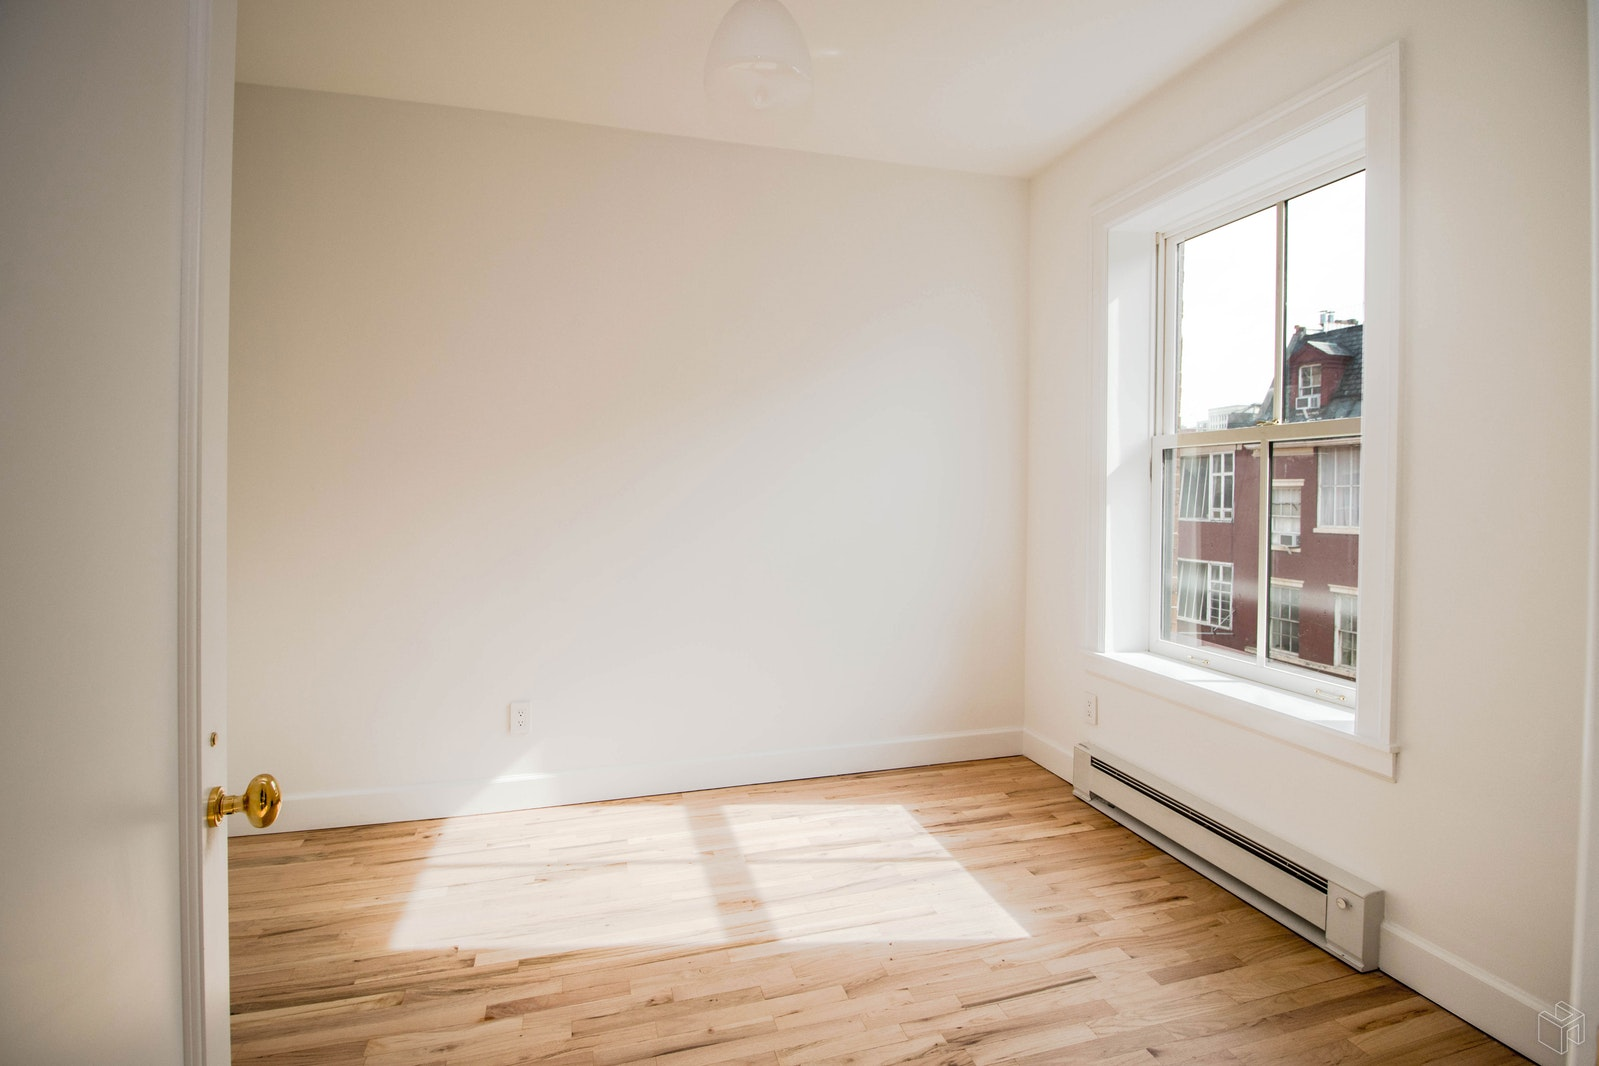 29 West 8th Street 3f, Greenwich Village, NYC, 10011, Price Not Disclosed, Rented Property, Halstead Real Estate, Photo 3